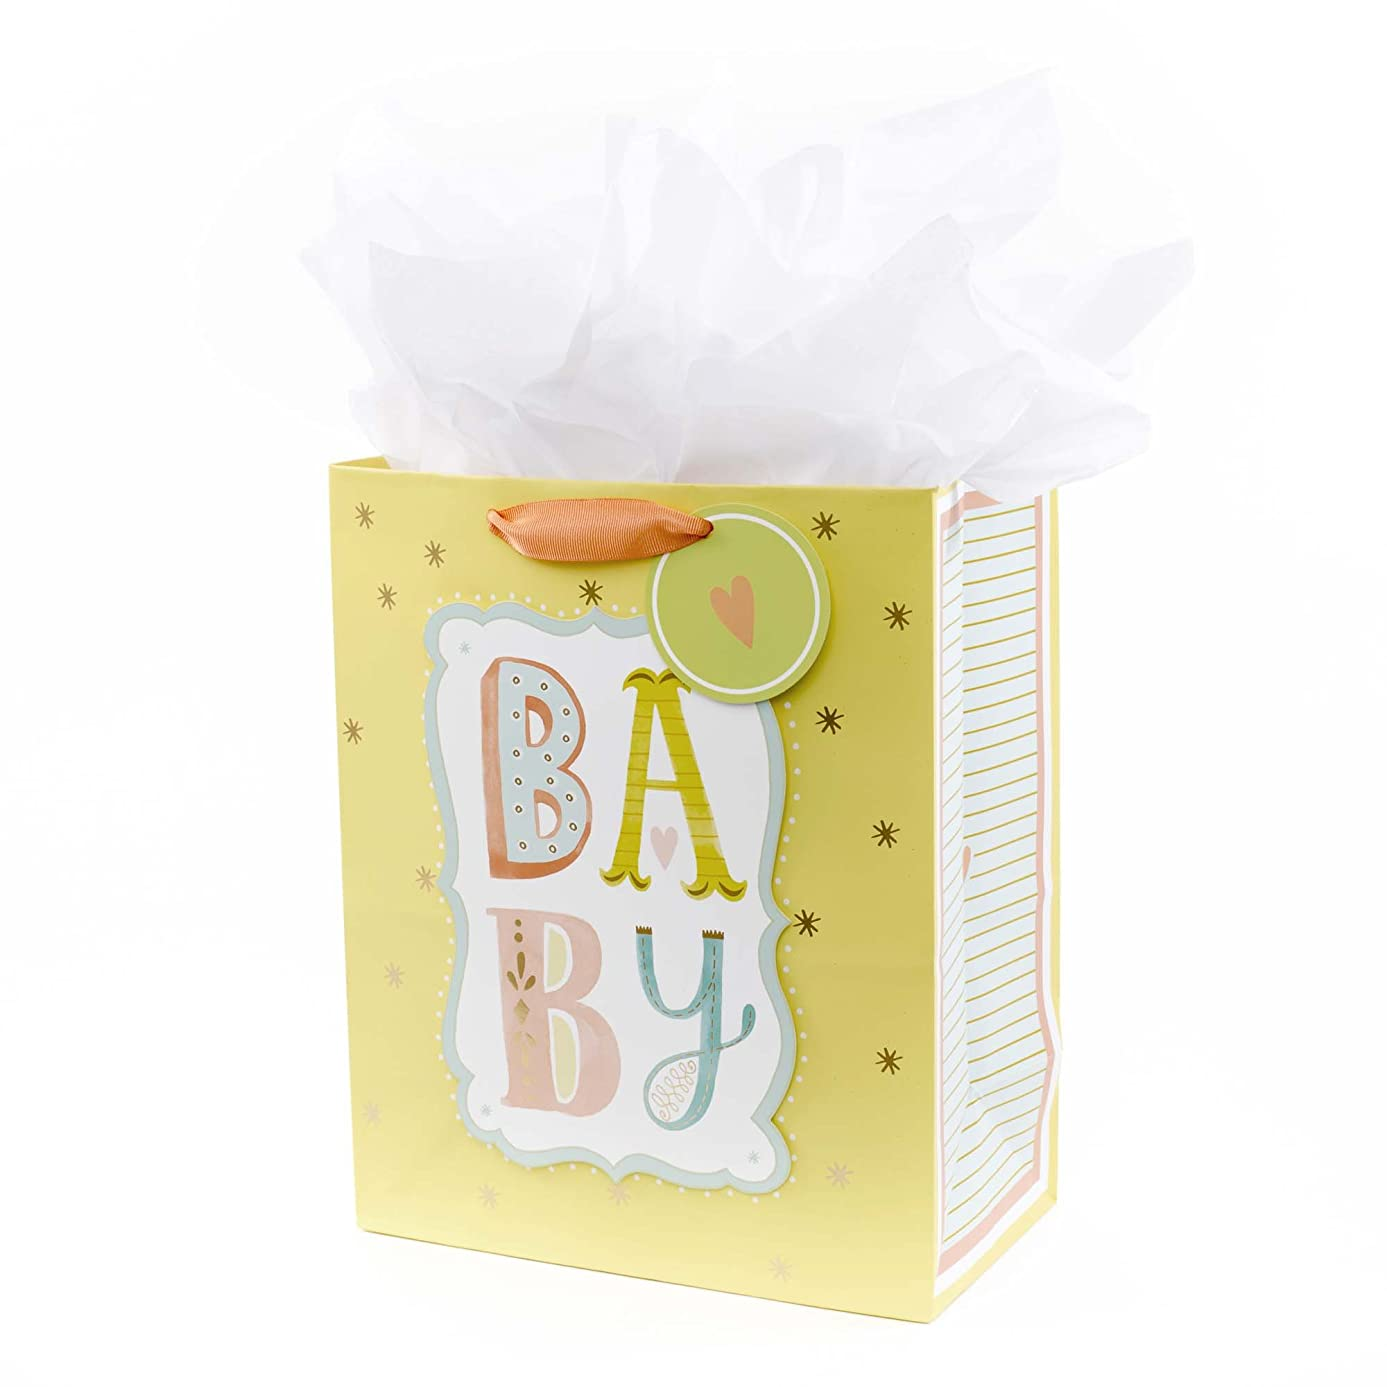 Hallmark Large Gift Bag with Tissue Paper for Baby Showers, New Parents and More (B-A-B-Y)